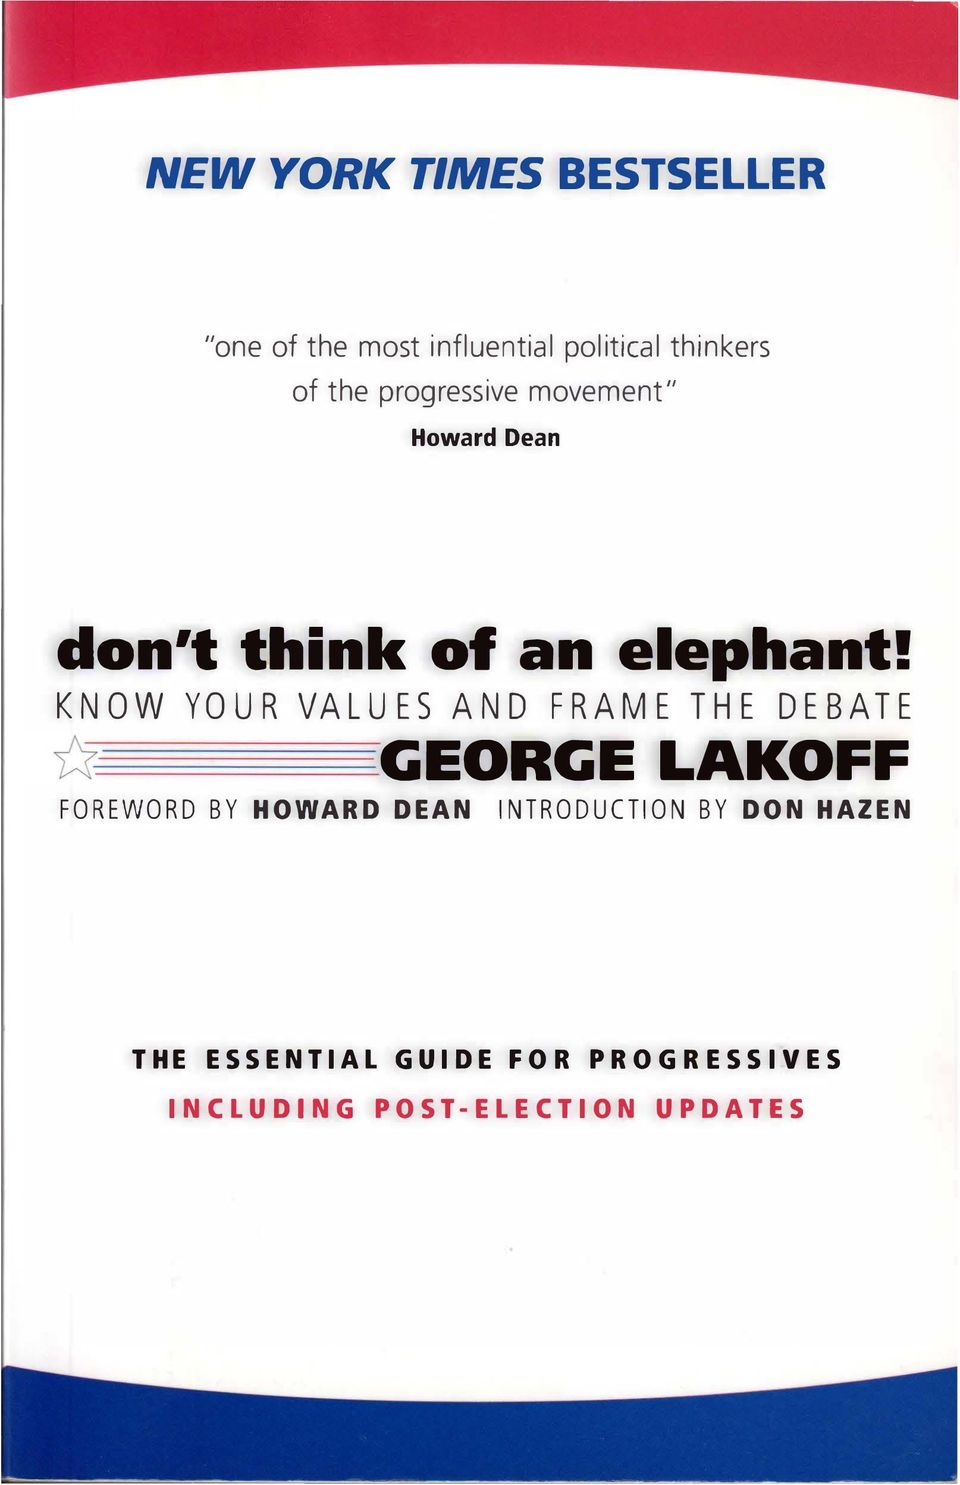 KNOW YOUR VALUES AND FRAME THE DEBATE u GEORGE LAKOFF FOREWORD BY HOWARD DEAN